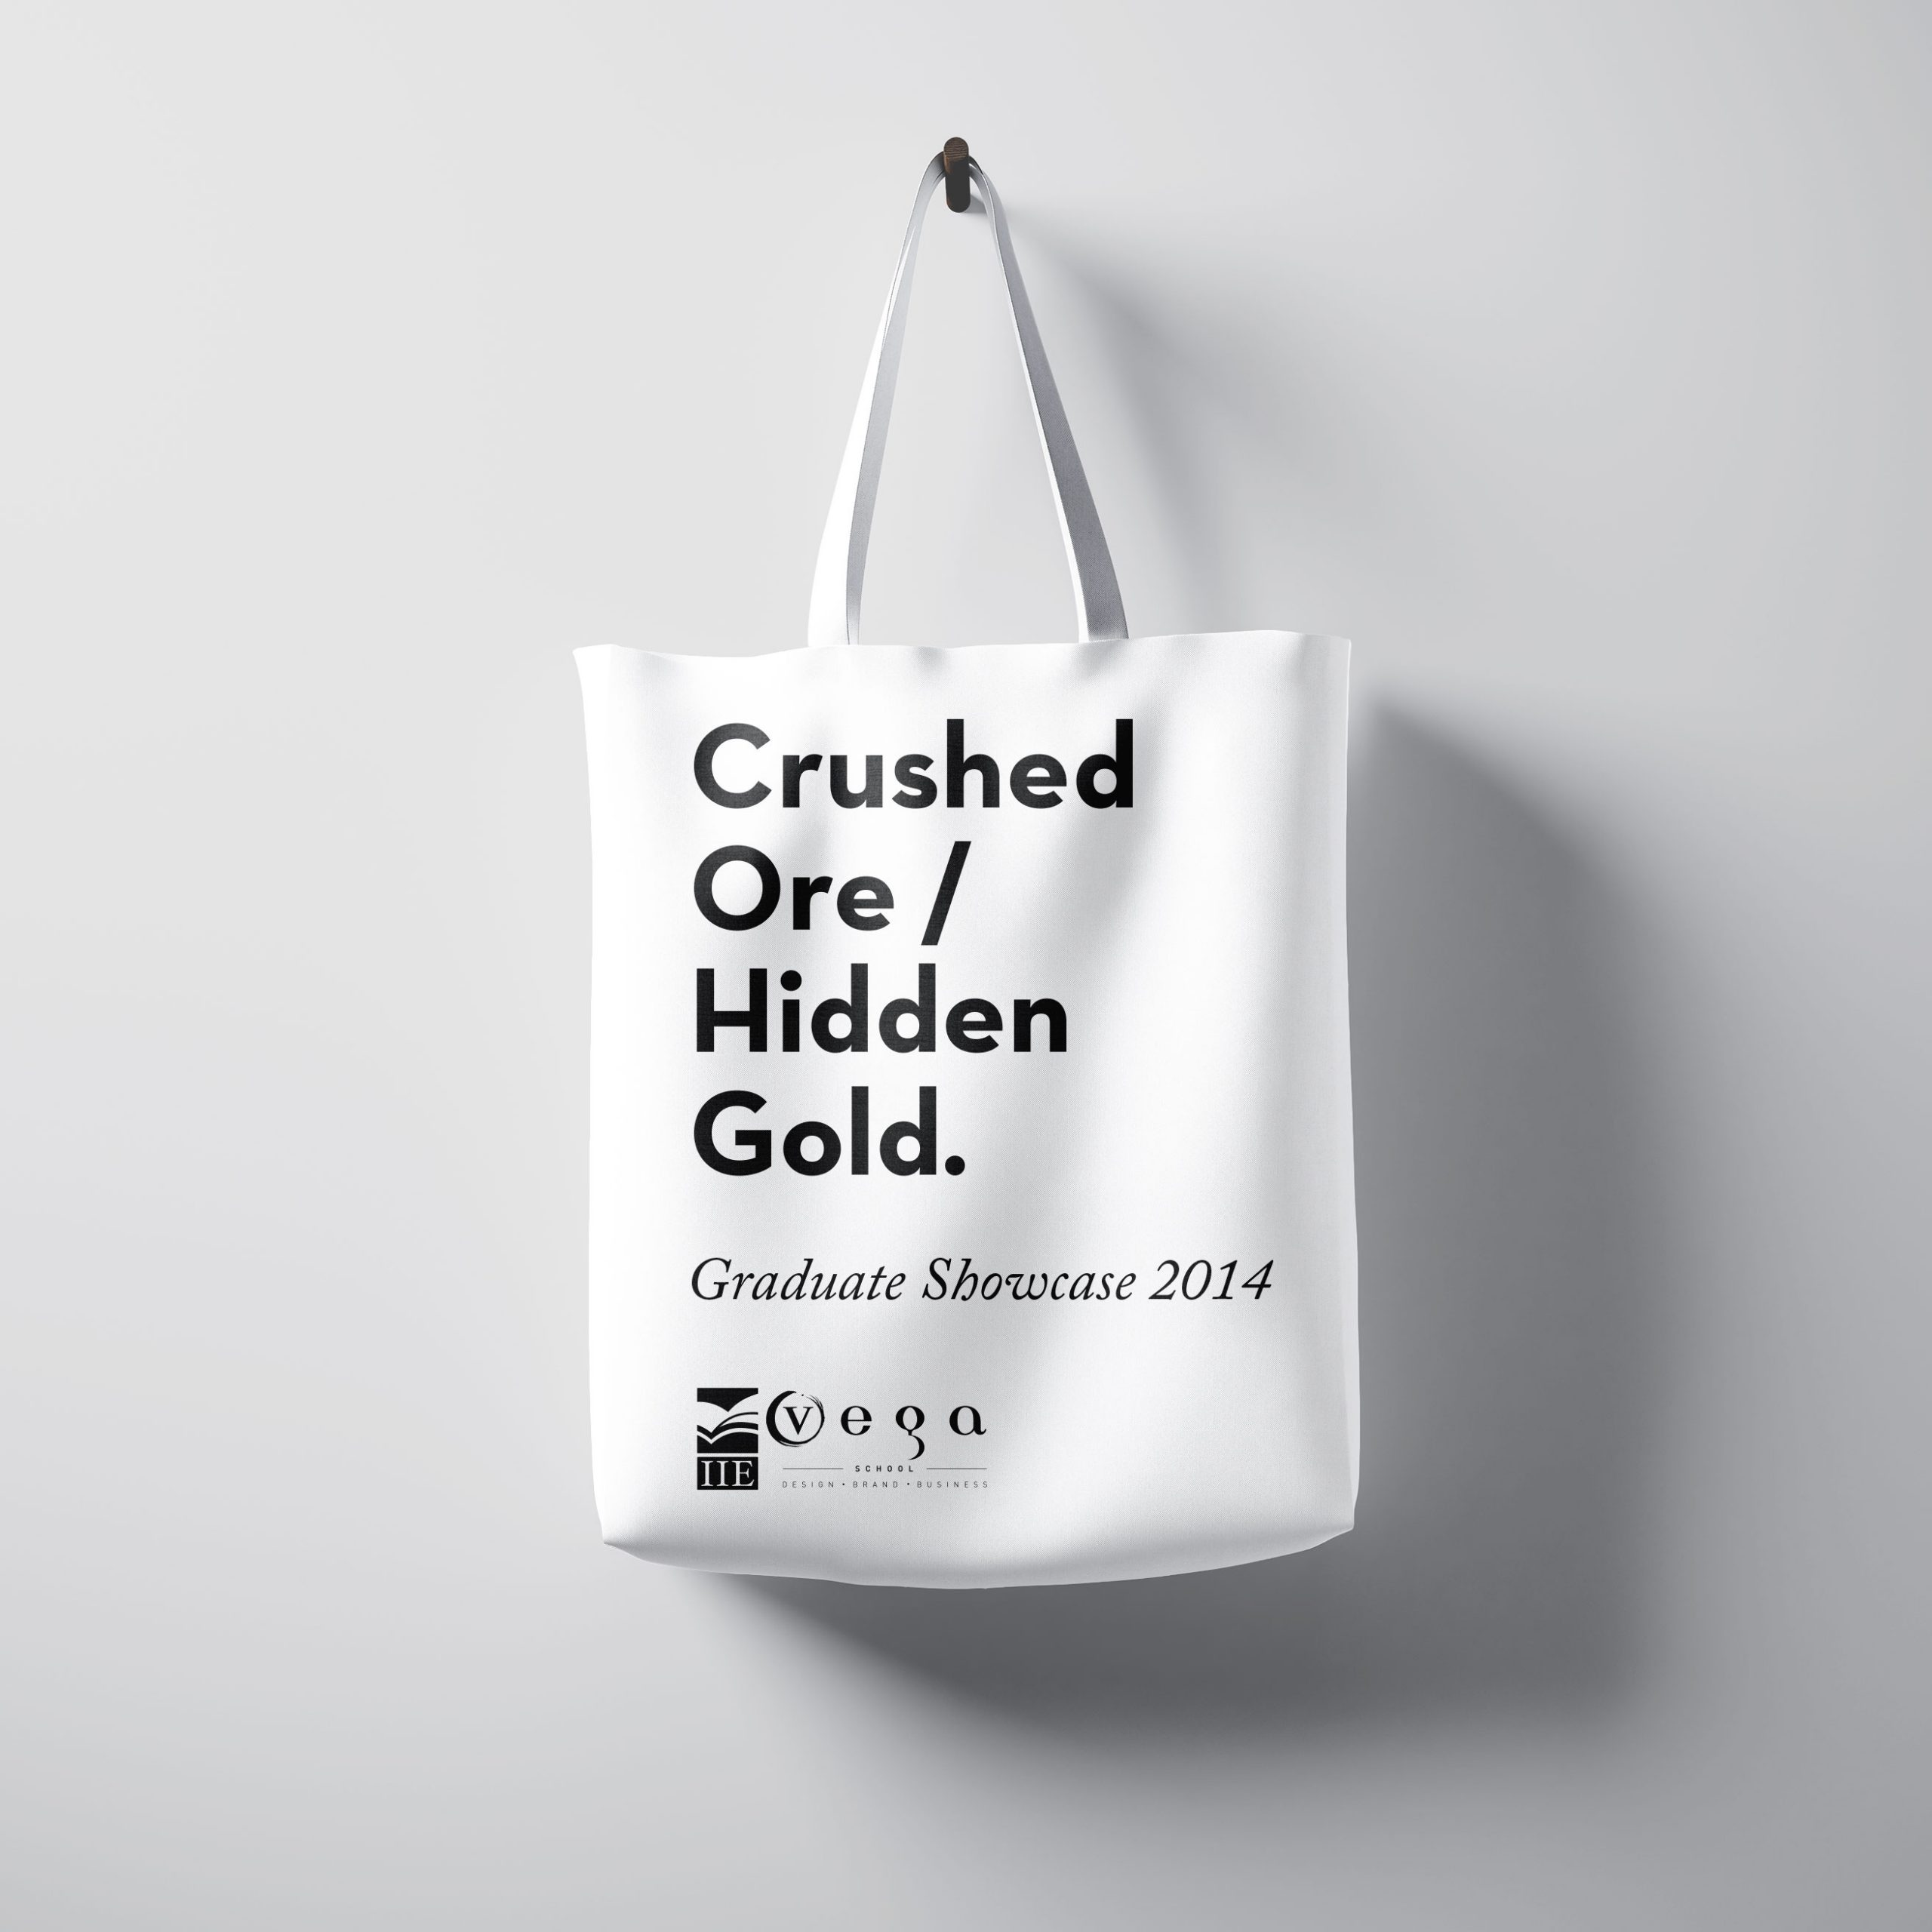 Crushed Ore Hidden Gold Tote Bag